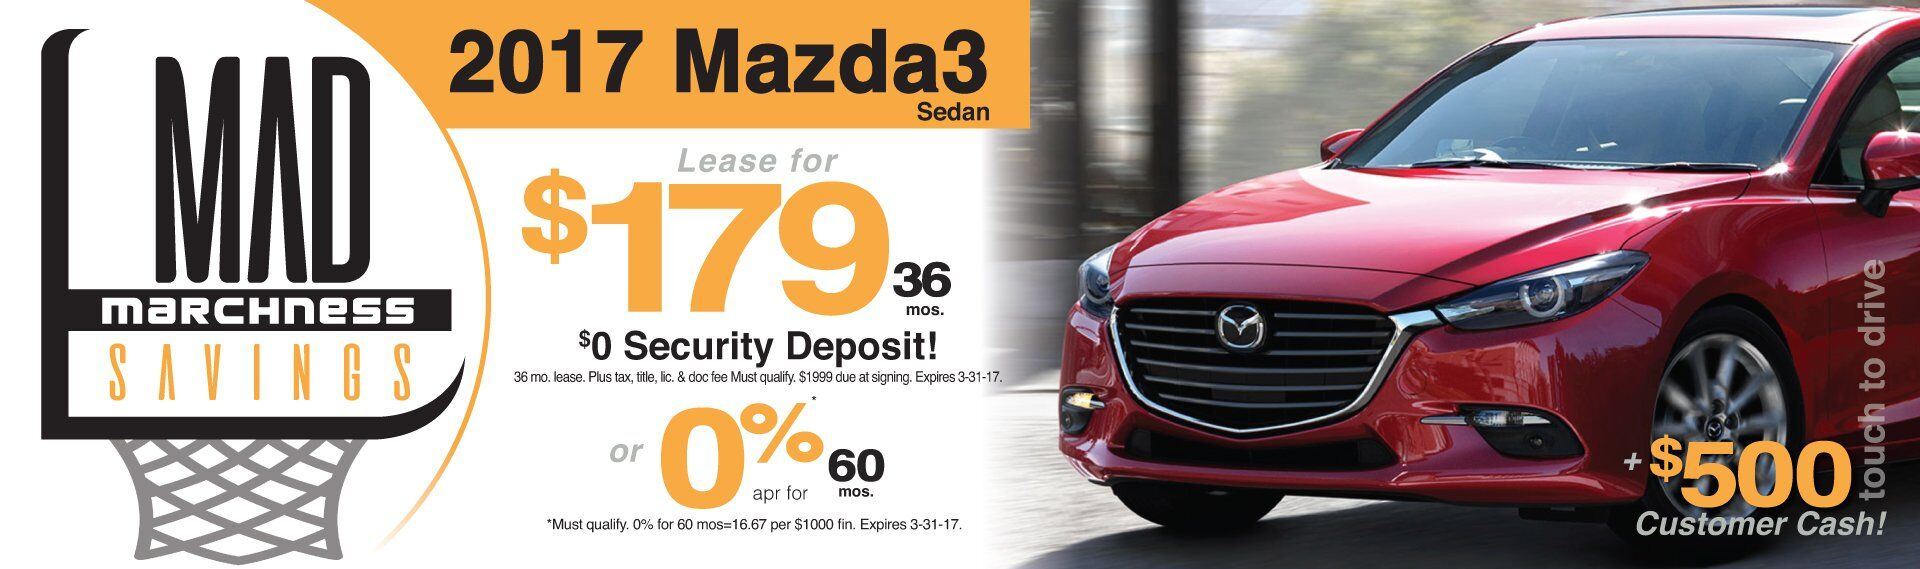 Mad Marchness Mazda3 Specials